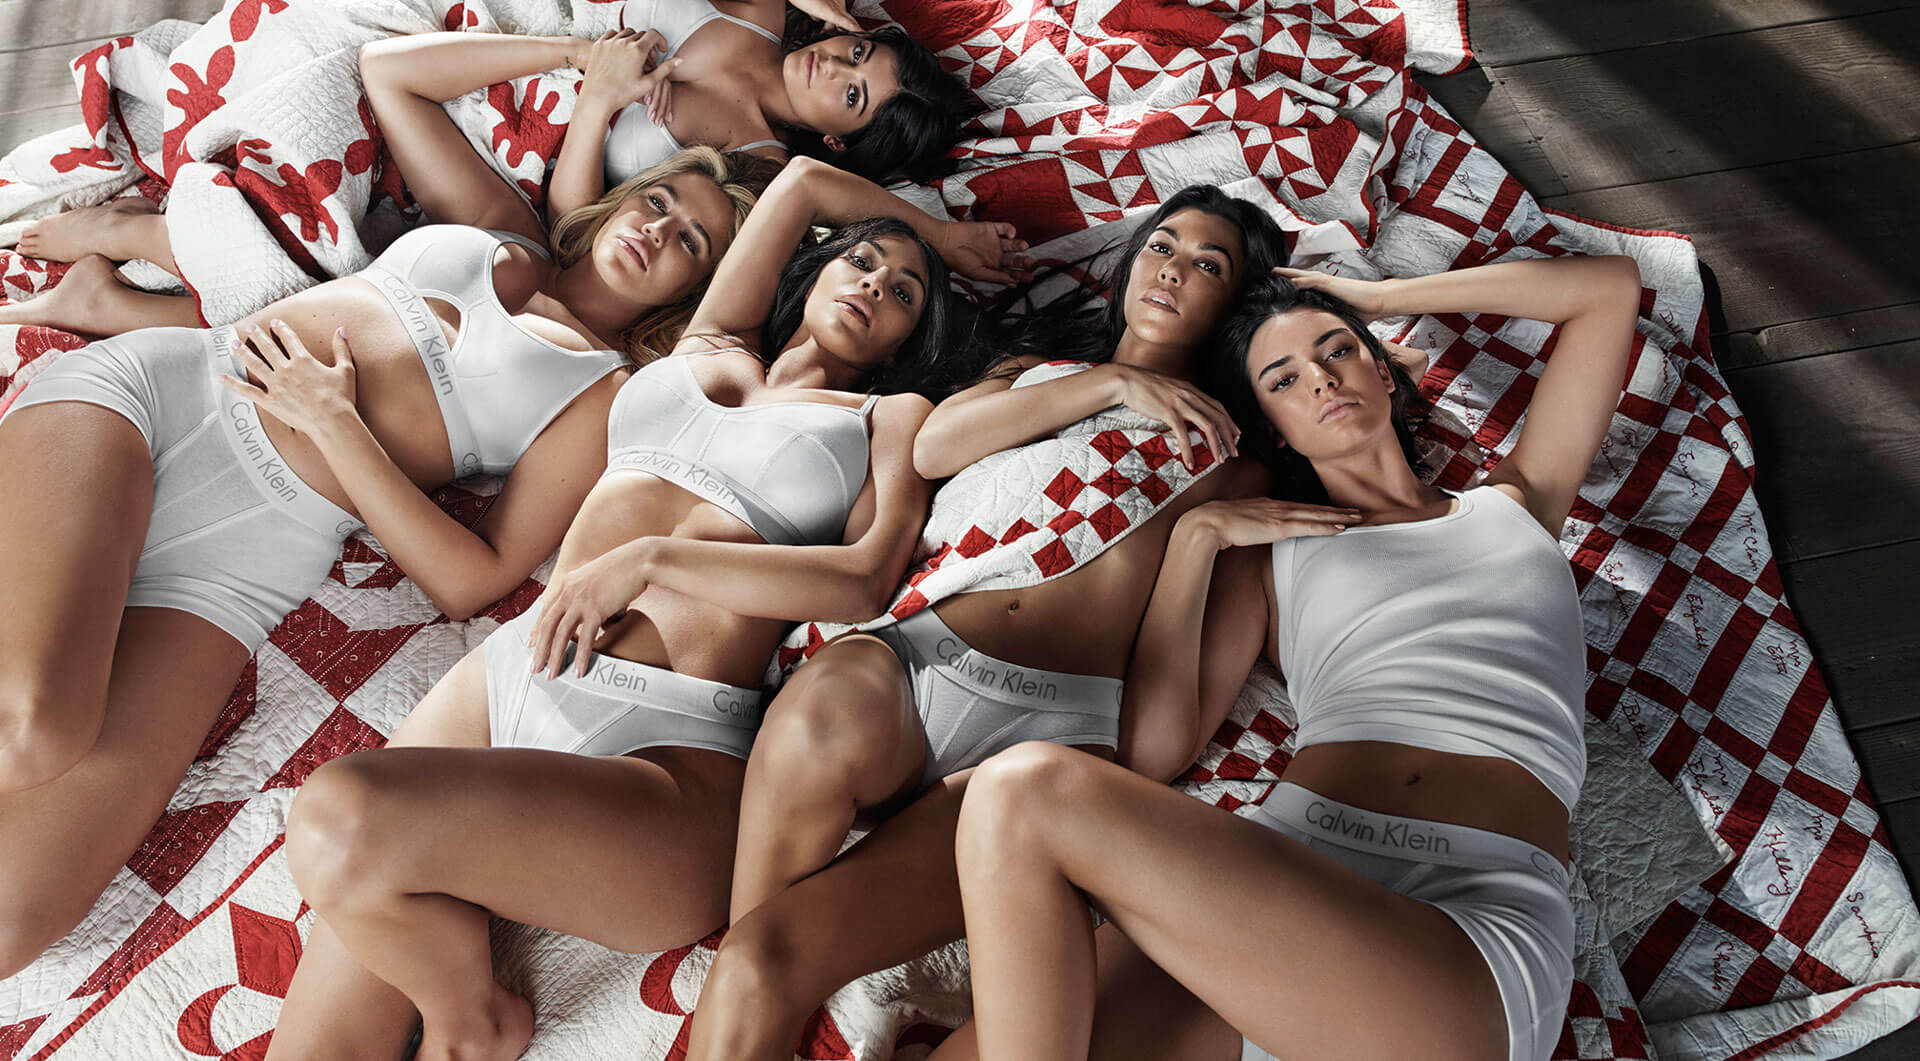 Explore the campaign featuring Kim Kardashian, Kourtney Kardashian, Khloe Kardashian, Kendall Jenner and Kylie Jenner. Our youth. Our family. #MYCALVINS.